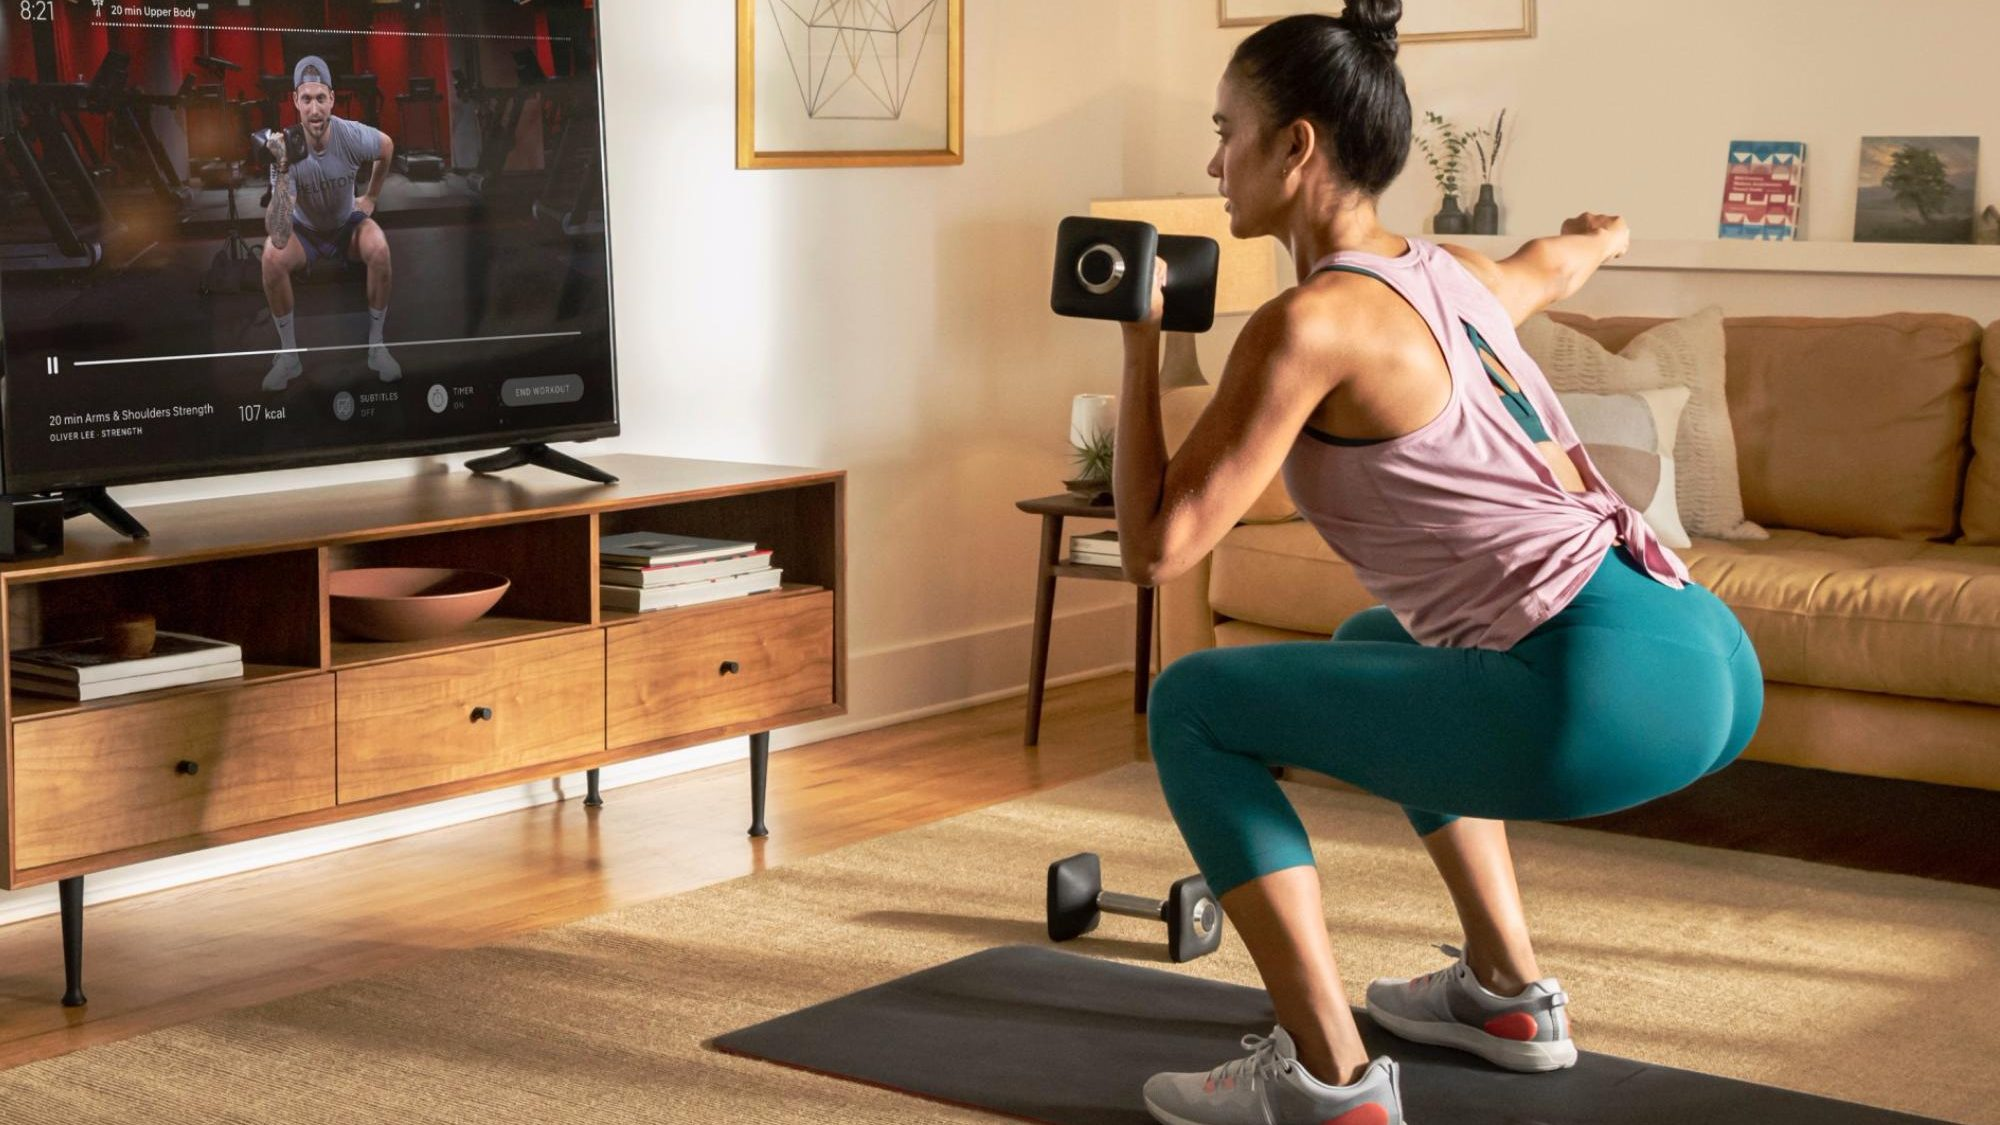 Missing the gym? Peloton App extends trial to 90 days and it works with Chromecast